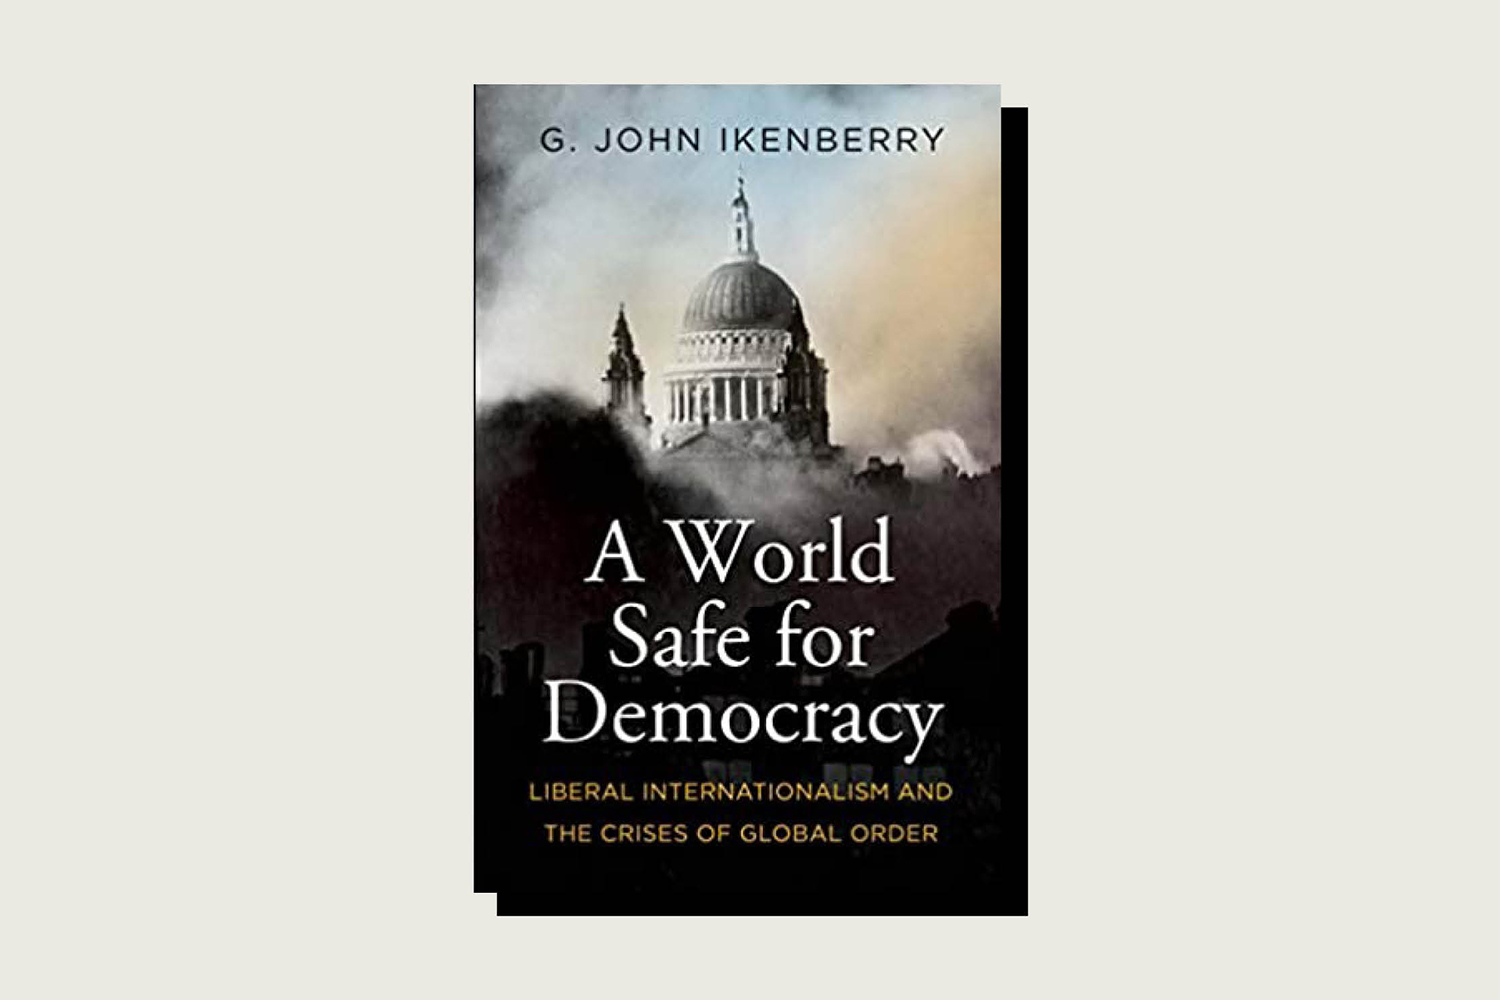 A World Safe for Democracy: Liberal Internationalism and the Crises of Global Order, G. John Ikenberry, Yale University Press, 432 pp., , September 2020